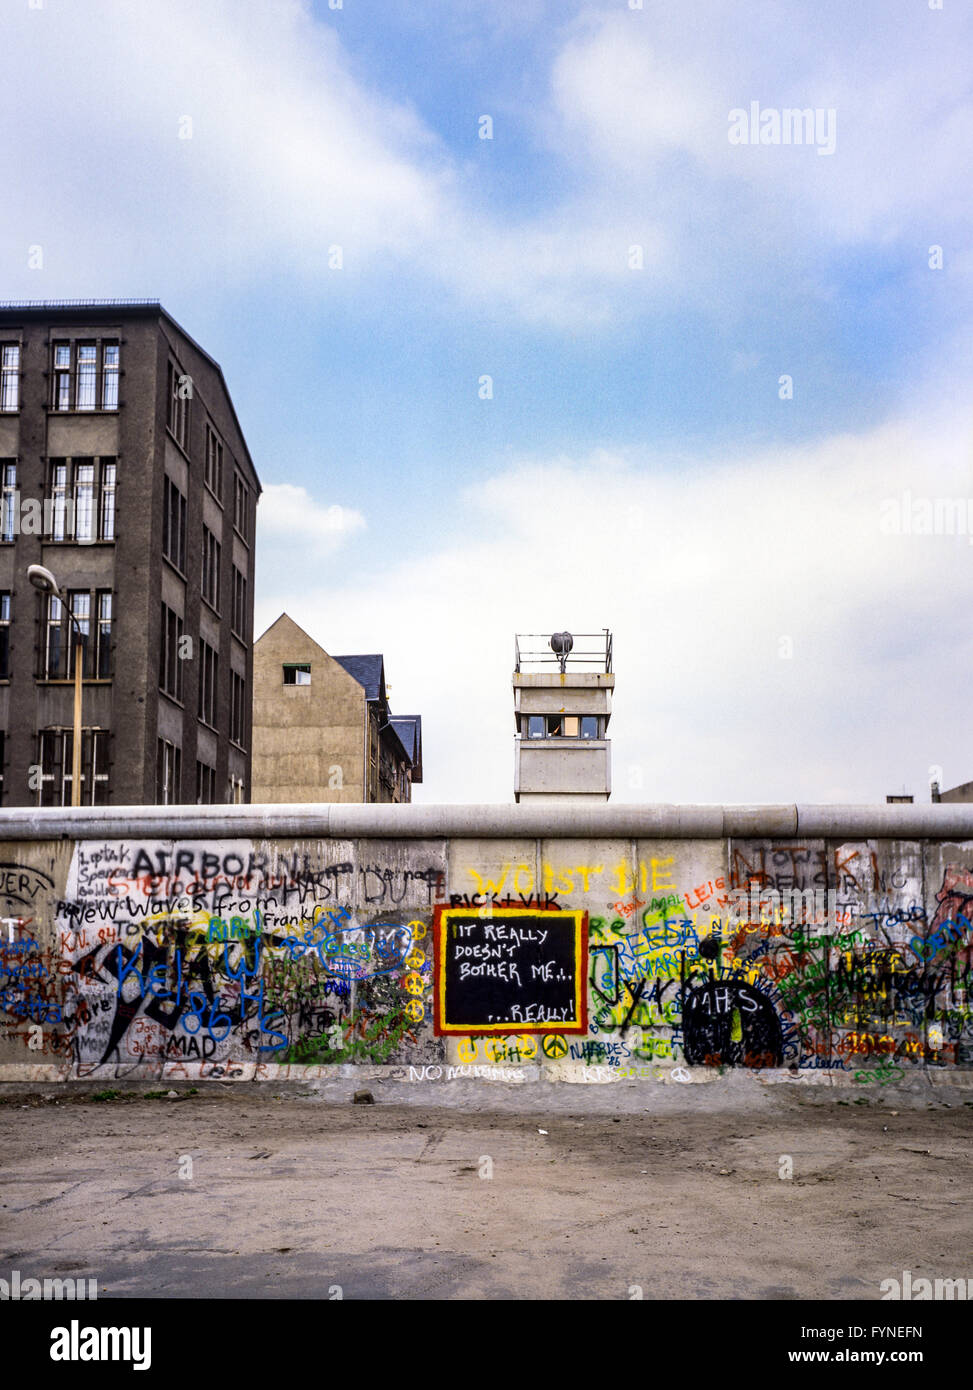 August 1986, graffitis on the Berlin Wall and East Berlin watchtower, Zimmerstrasse street, Kreuzberg, West Berlin - Stock Image